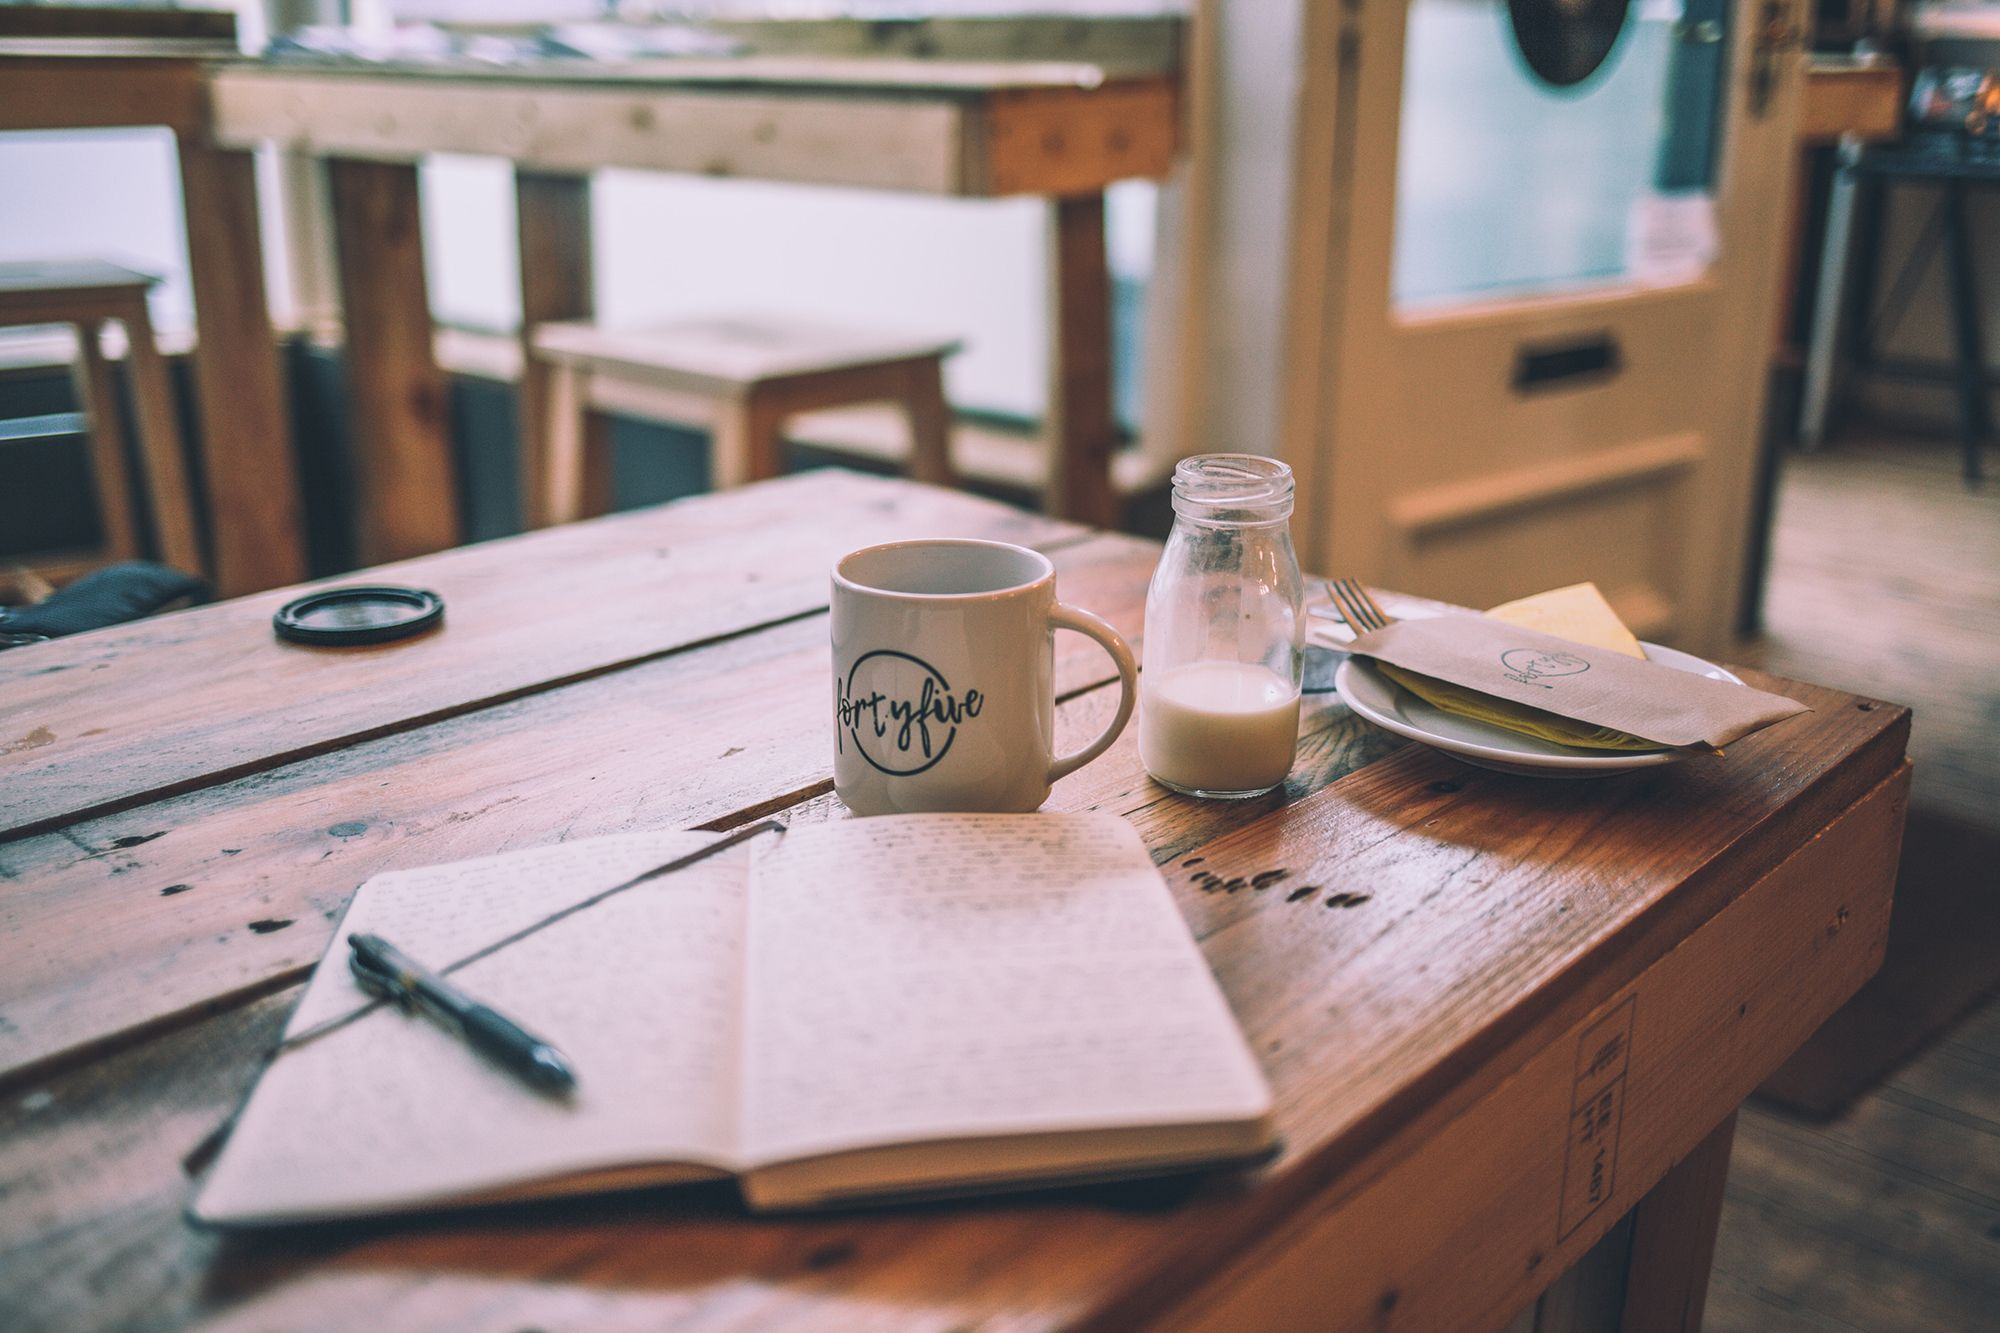 The link between journaling and mindfulness